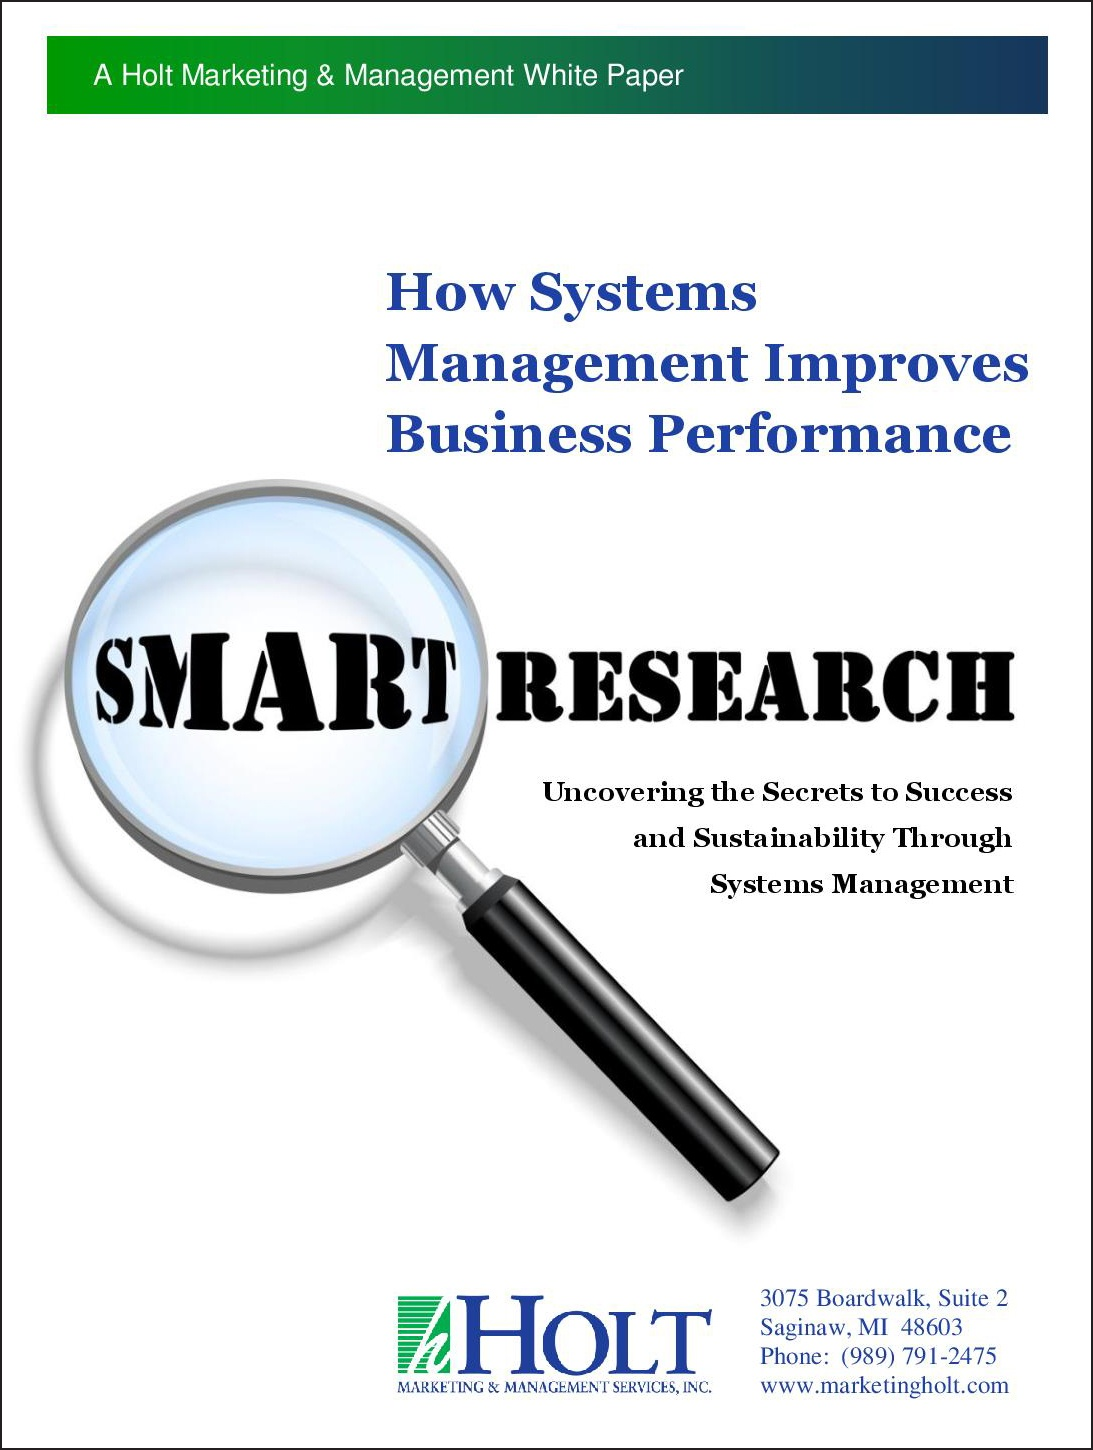 Smart Research - How Systems Management Improves Business Performance_Cover.jpg